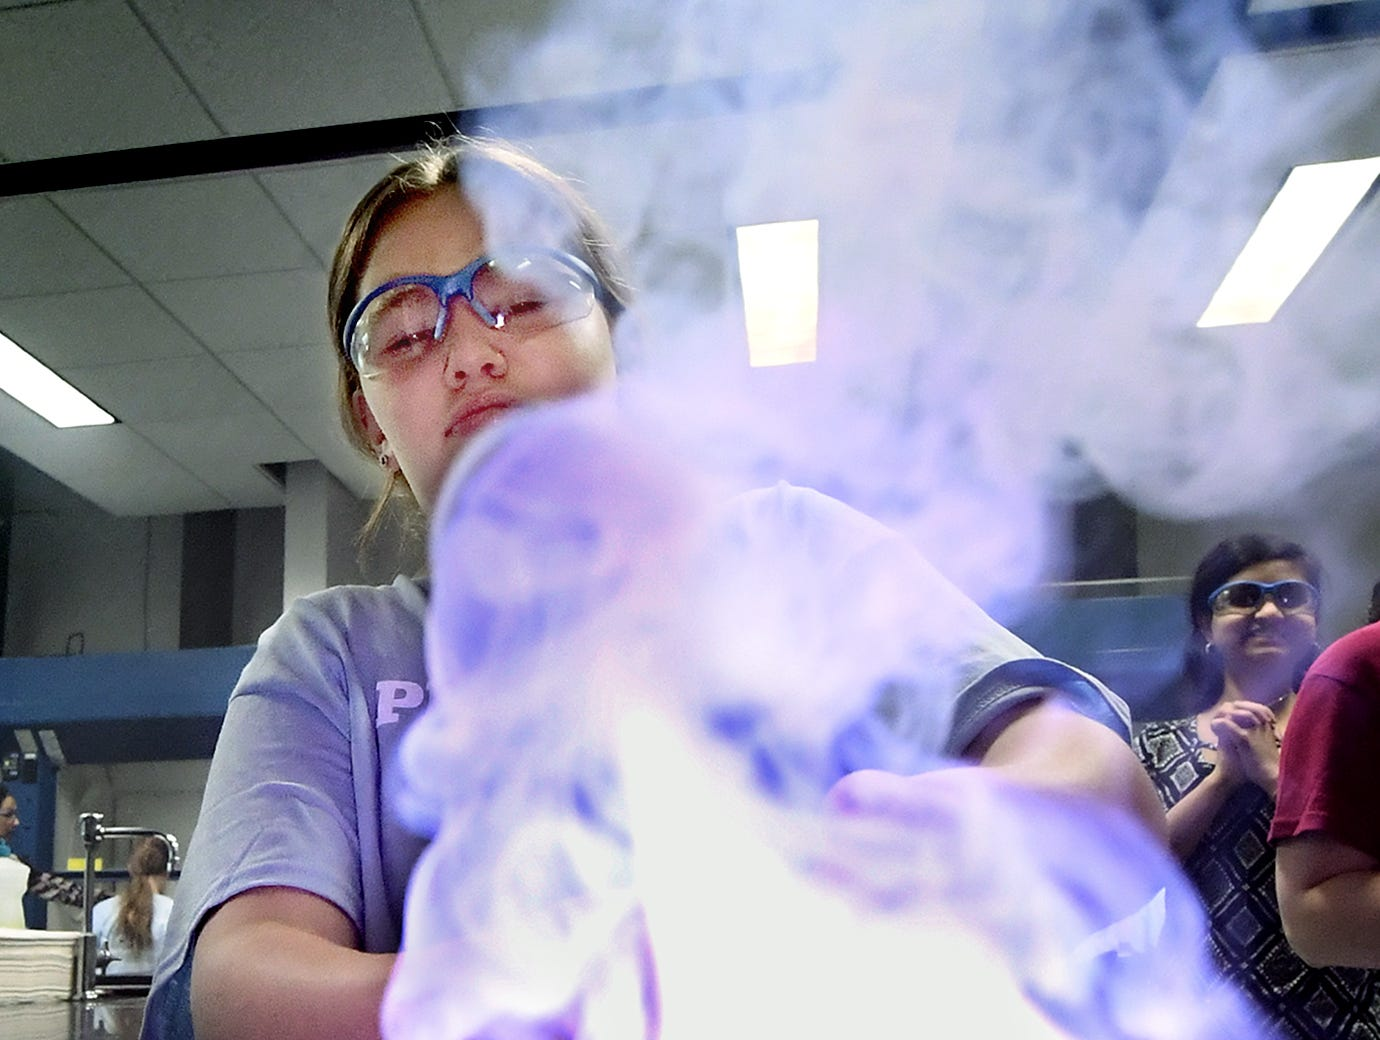 Harrisburg Academy student Annabel Hathaway lights a mixture during the Sparkling with Chemistry workshop at the Pathways to Your Future: Exploring STEAM Careers event at Penn State York Friday, May 10, 2019. Over 200 seventh-grade girls from 28 area schools participated in the program which highlighted science, technology, engineering, art, and mathematics (STEAM) careers. Industry leaders administered the workshops during the program, which is in its 23rd year. Bill Kalina photo